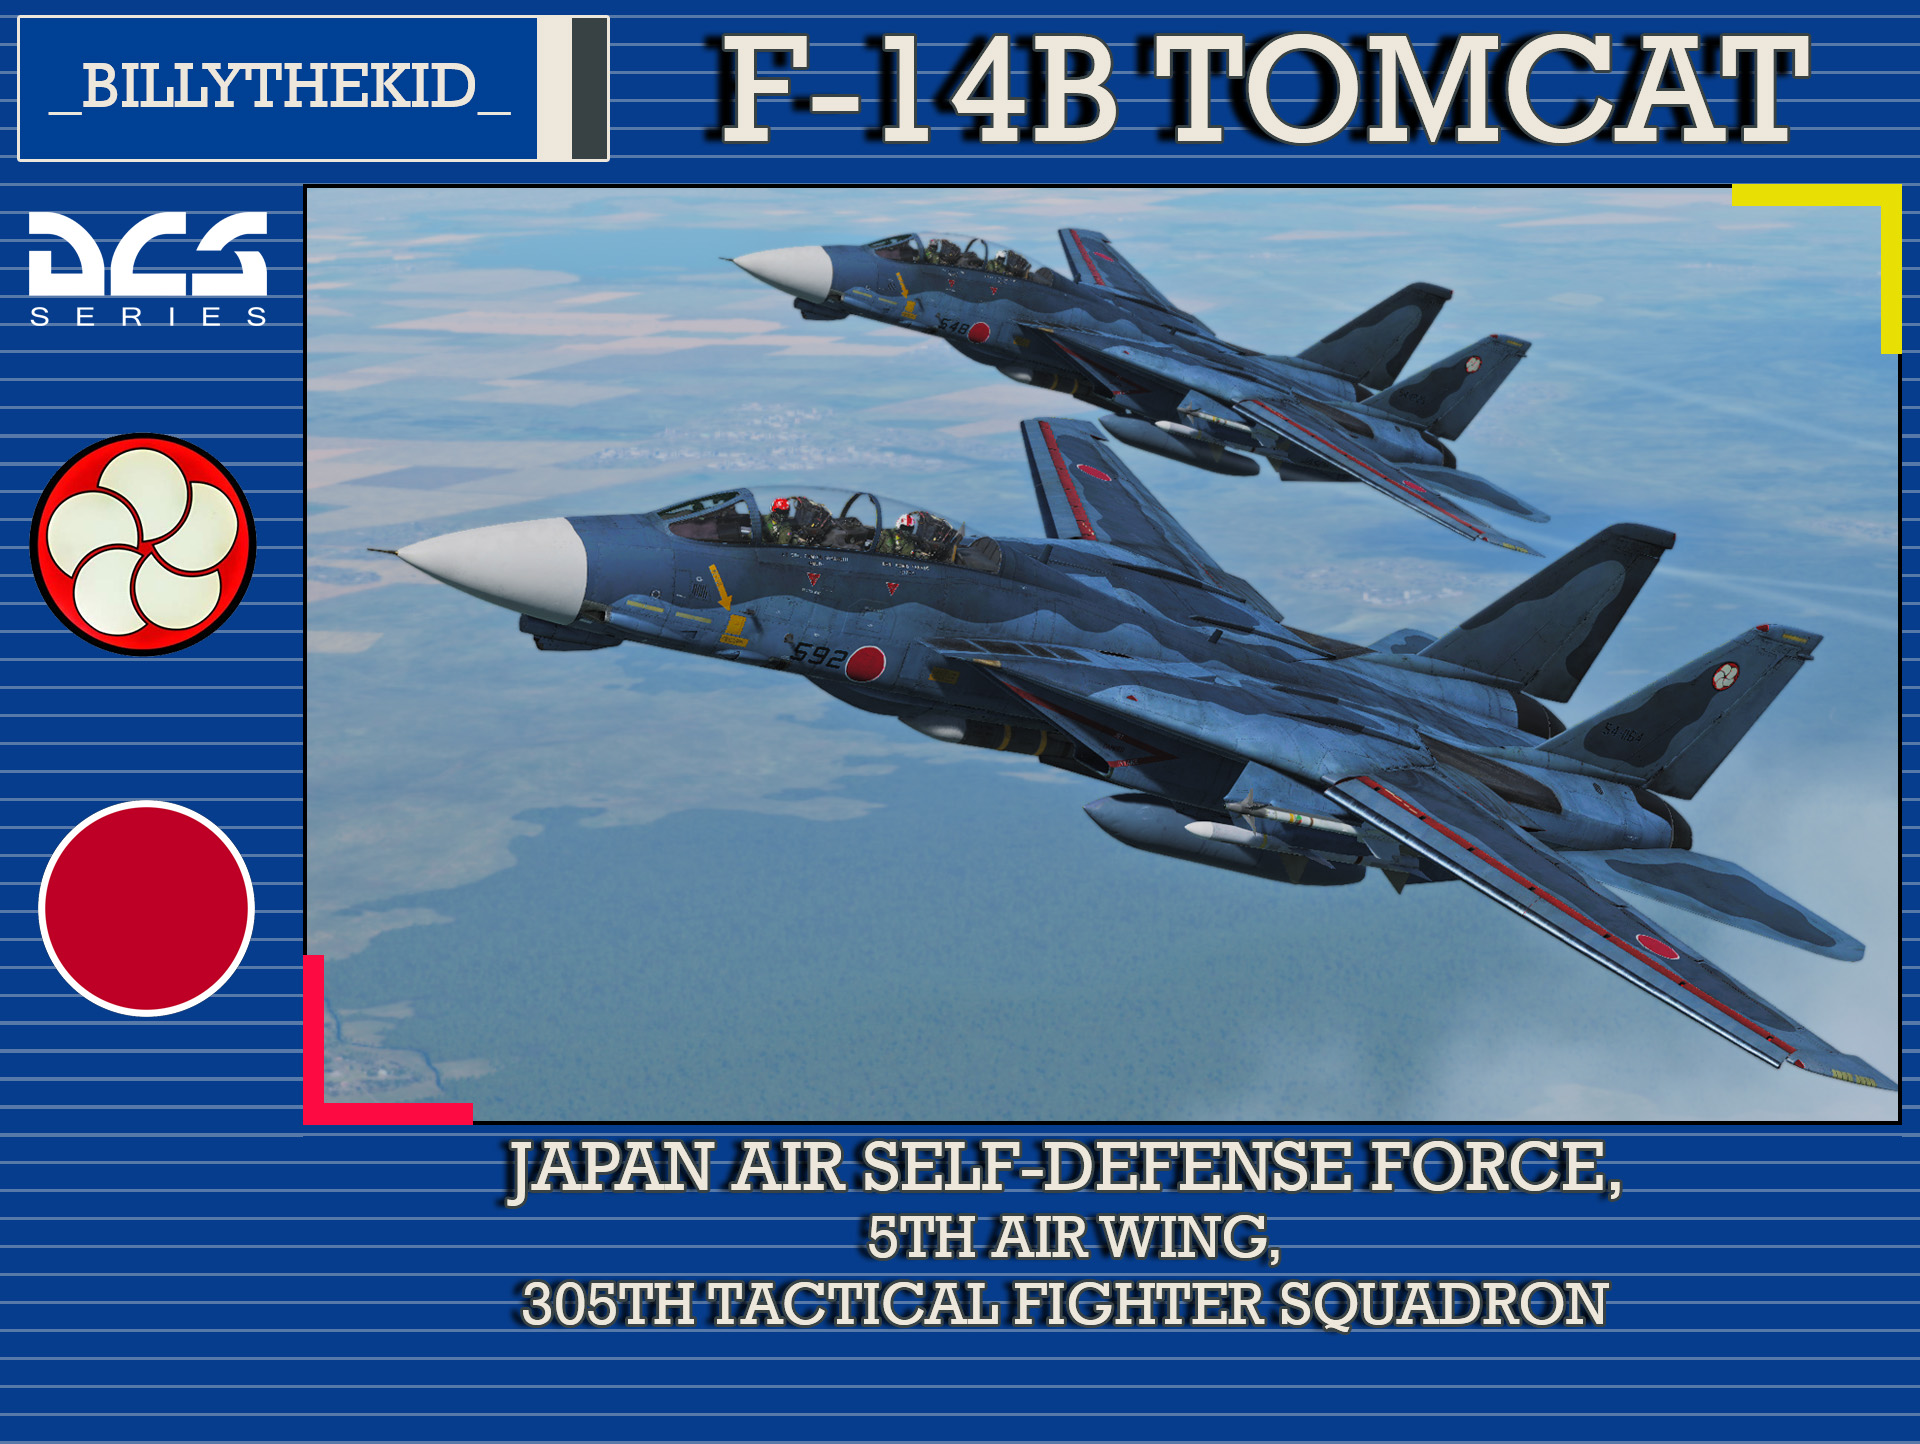 Fictional JASDF 5th Air Wing, 305th Tactical Fighter Squadron F-14J Tomcat